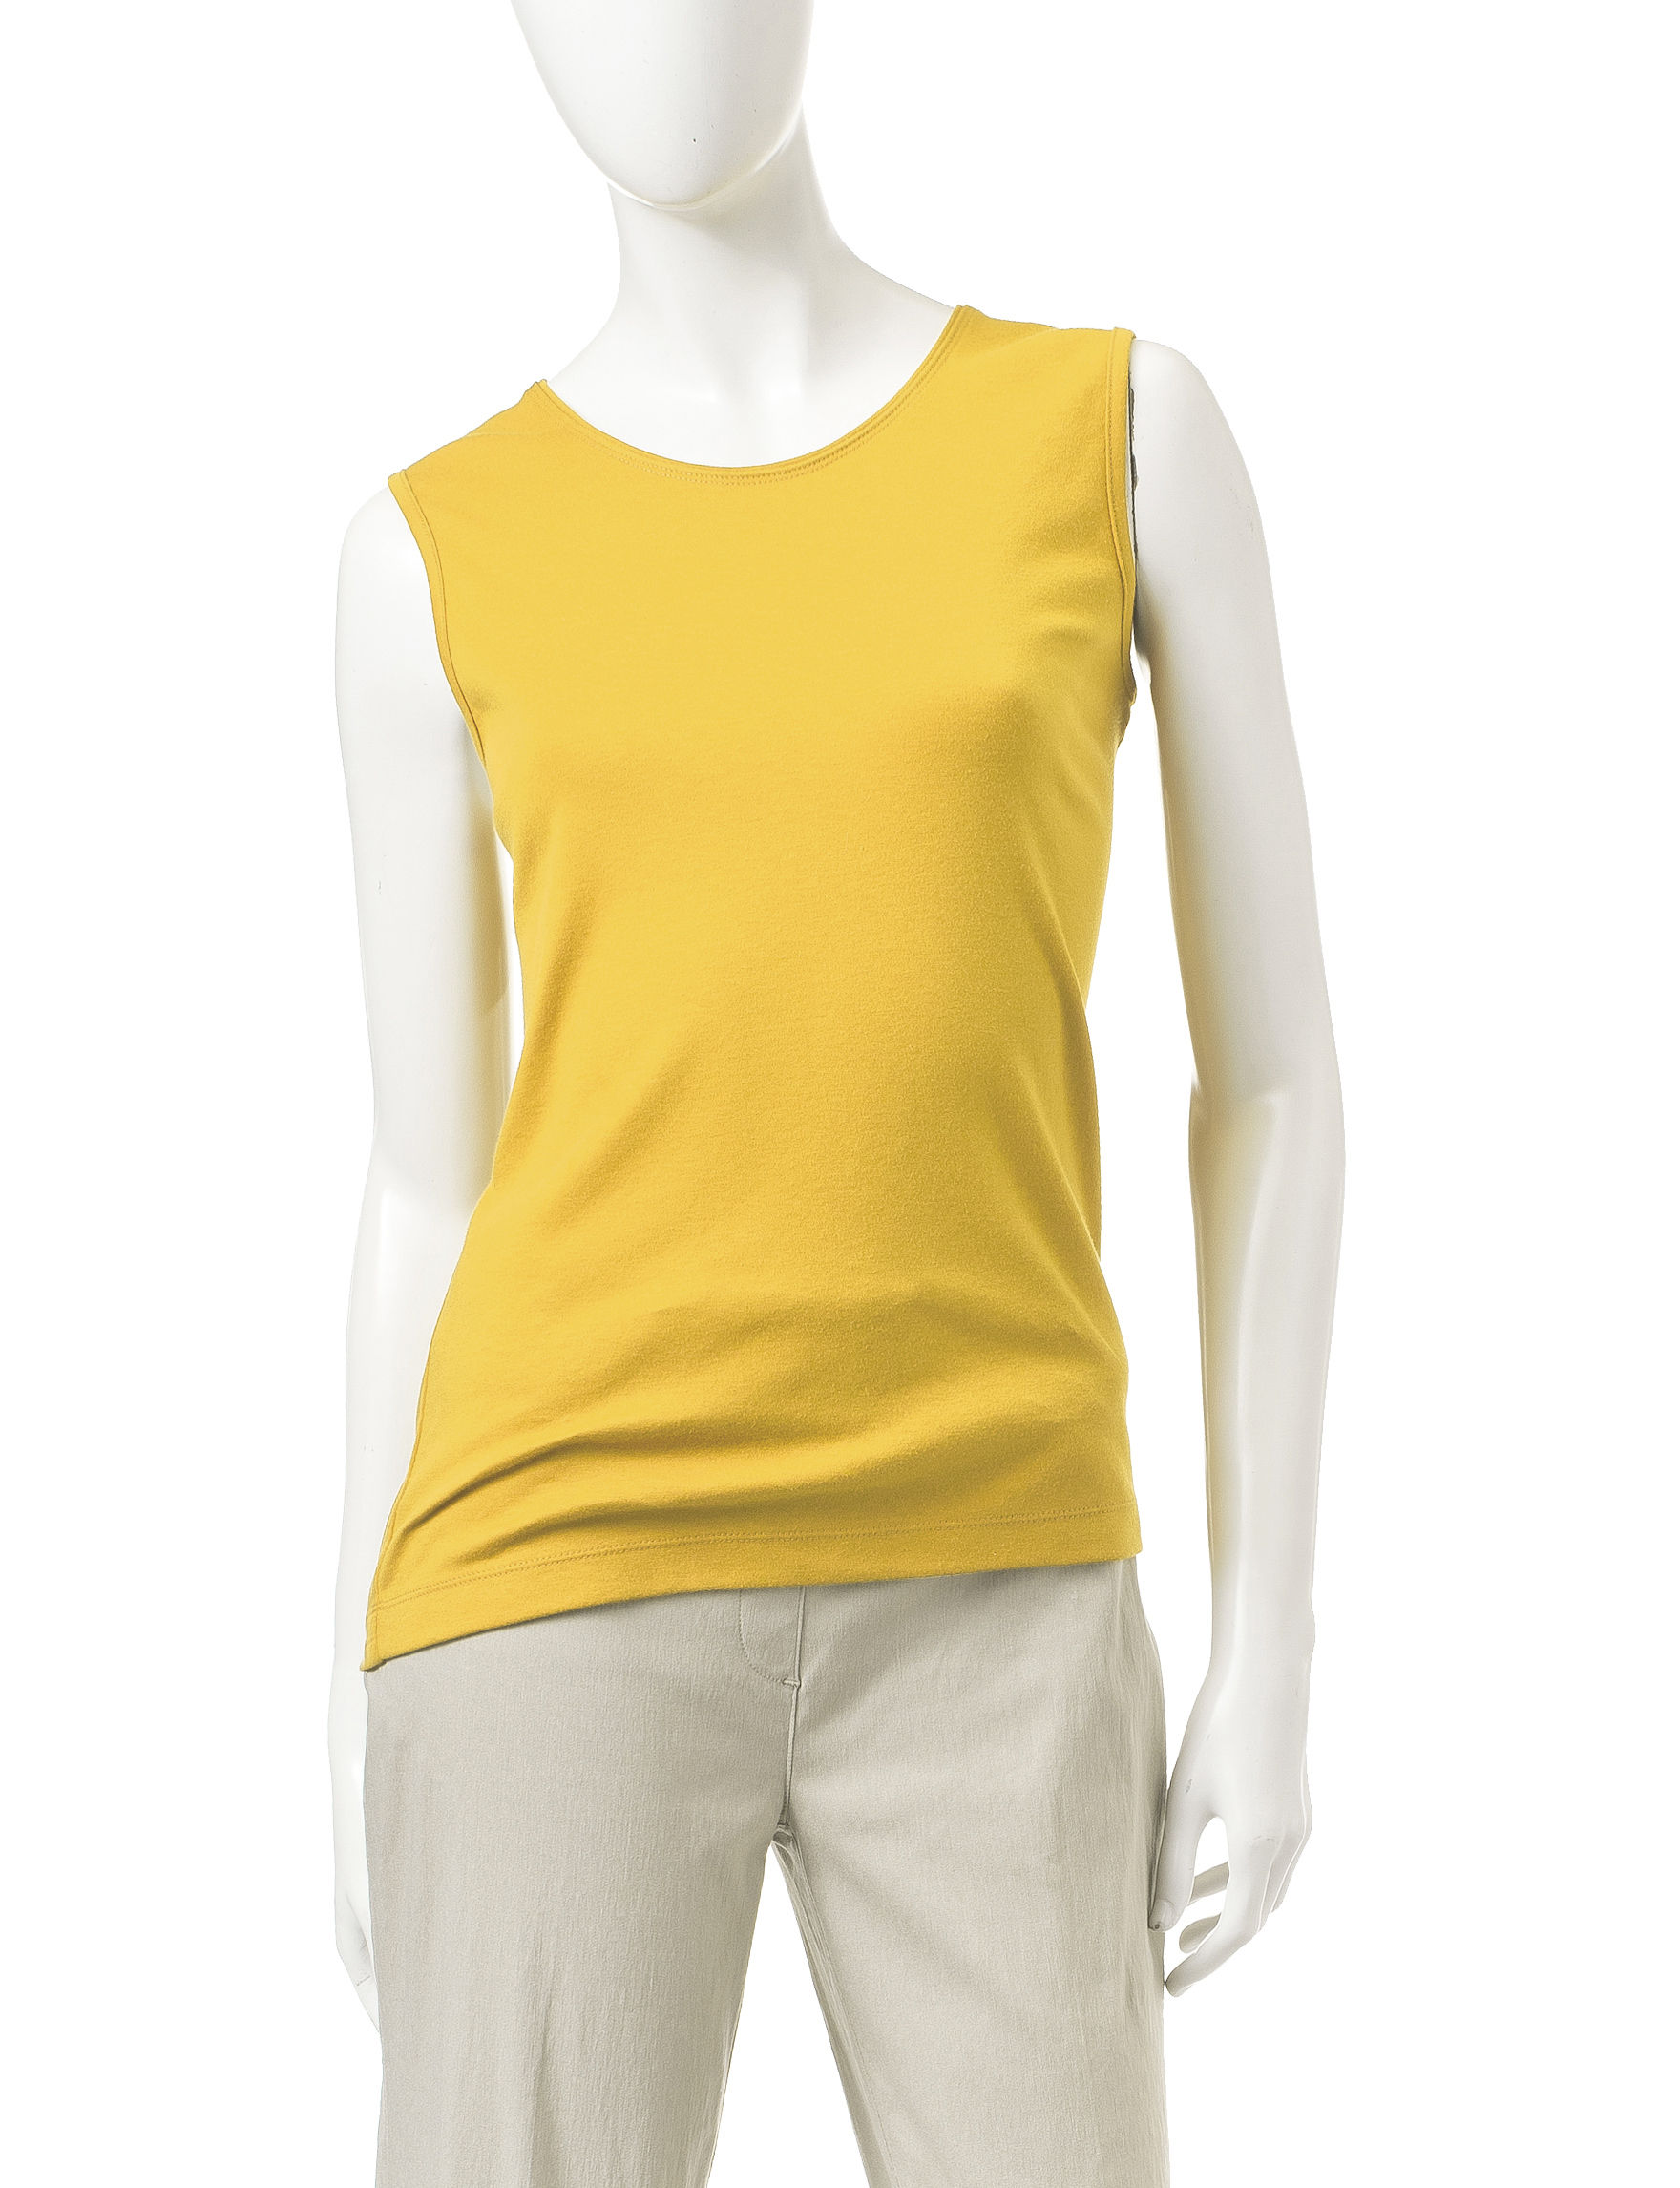 Rebecca Malone Yellow Tees & Tanks